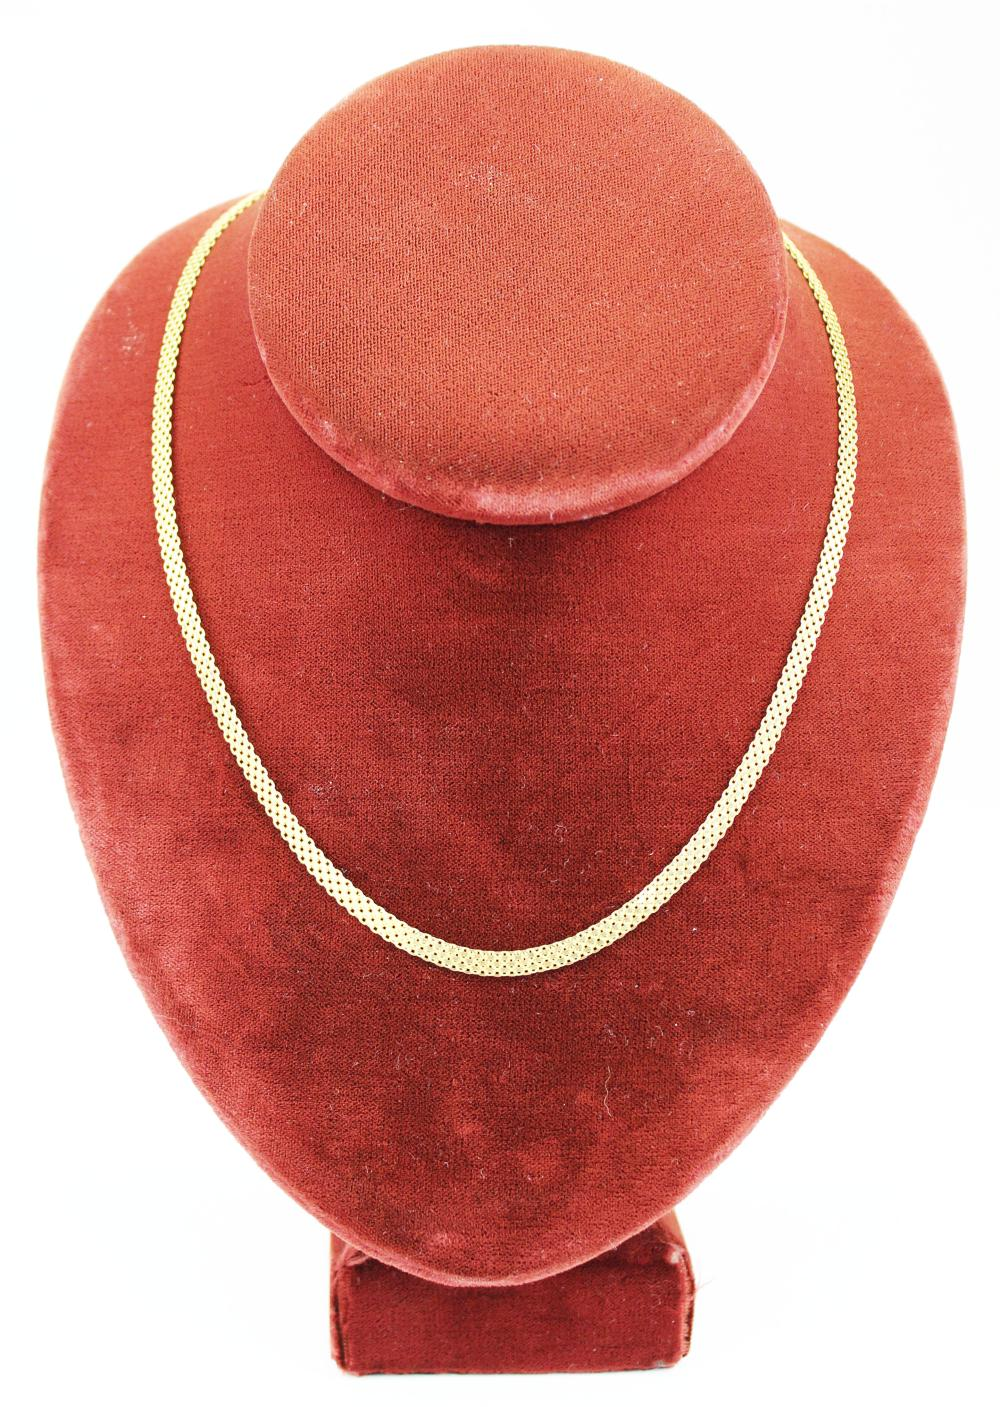 14 k yellow gold Italian woven necklace